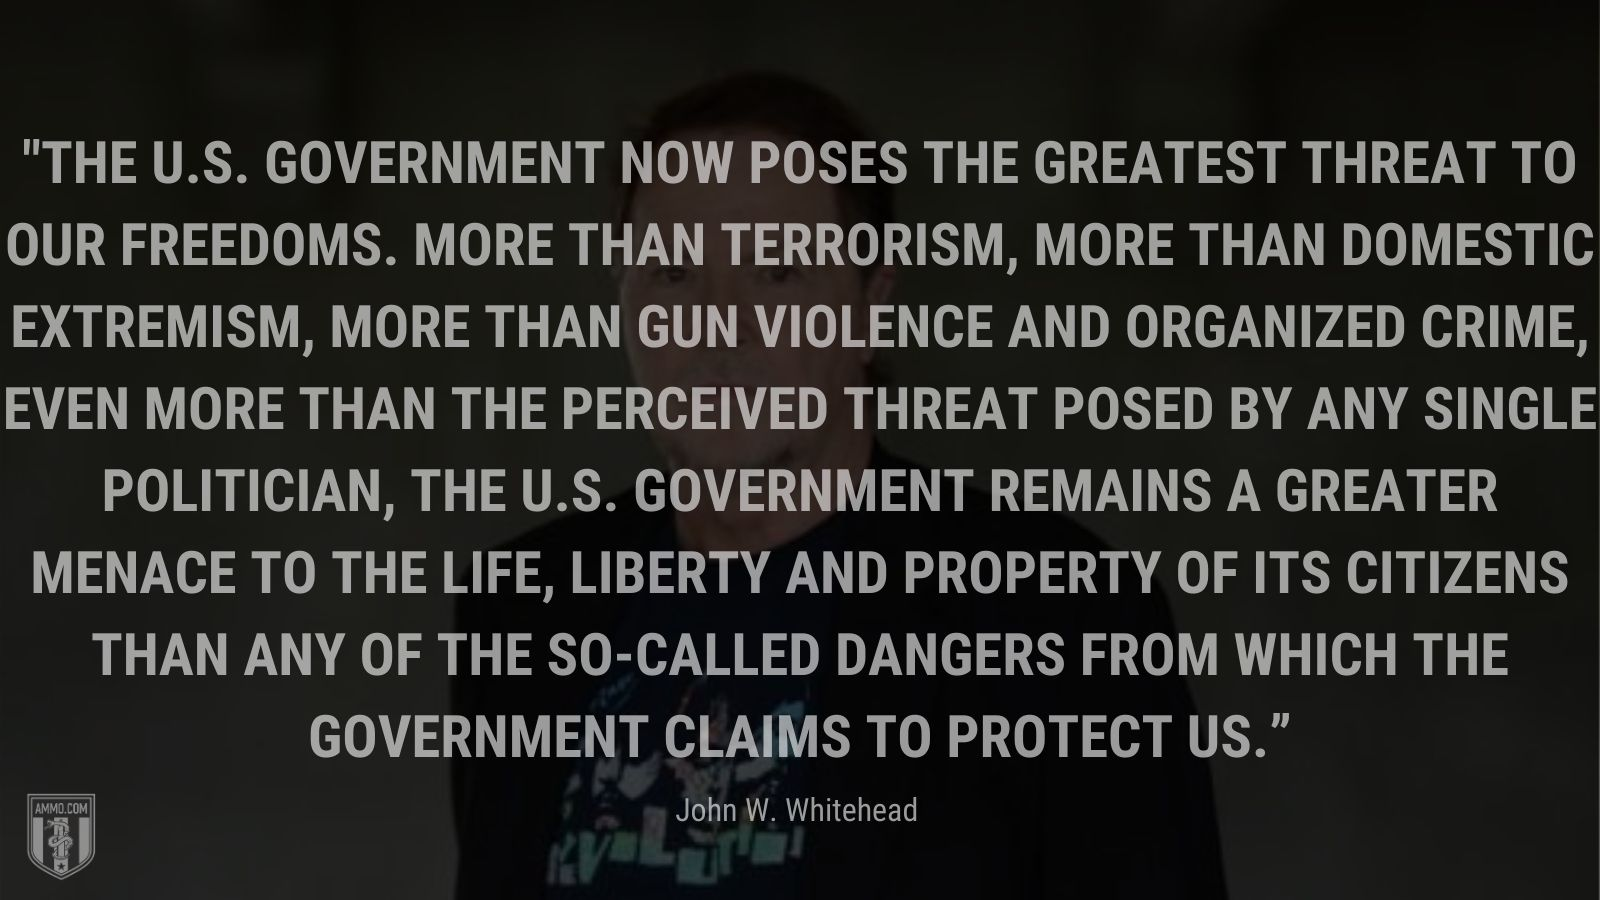 """""""The U.S. government now poses the greatest threat to our freedoms. More than terrorism, more than domestic extremism, more than gun violence and organized crime, even more than the perceived threat posed by any single politician, the U.S. government remains a greater menace to the life, liberty and property of its citizens than any of the so-called dangers from which the government claims to protect us."""" - John W. Whitehead"""